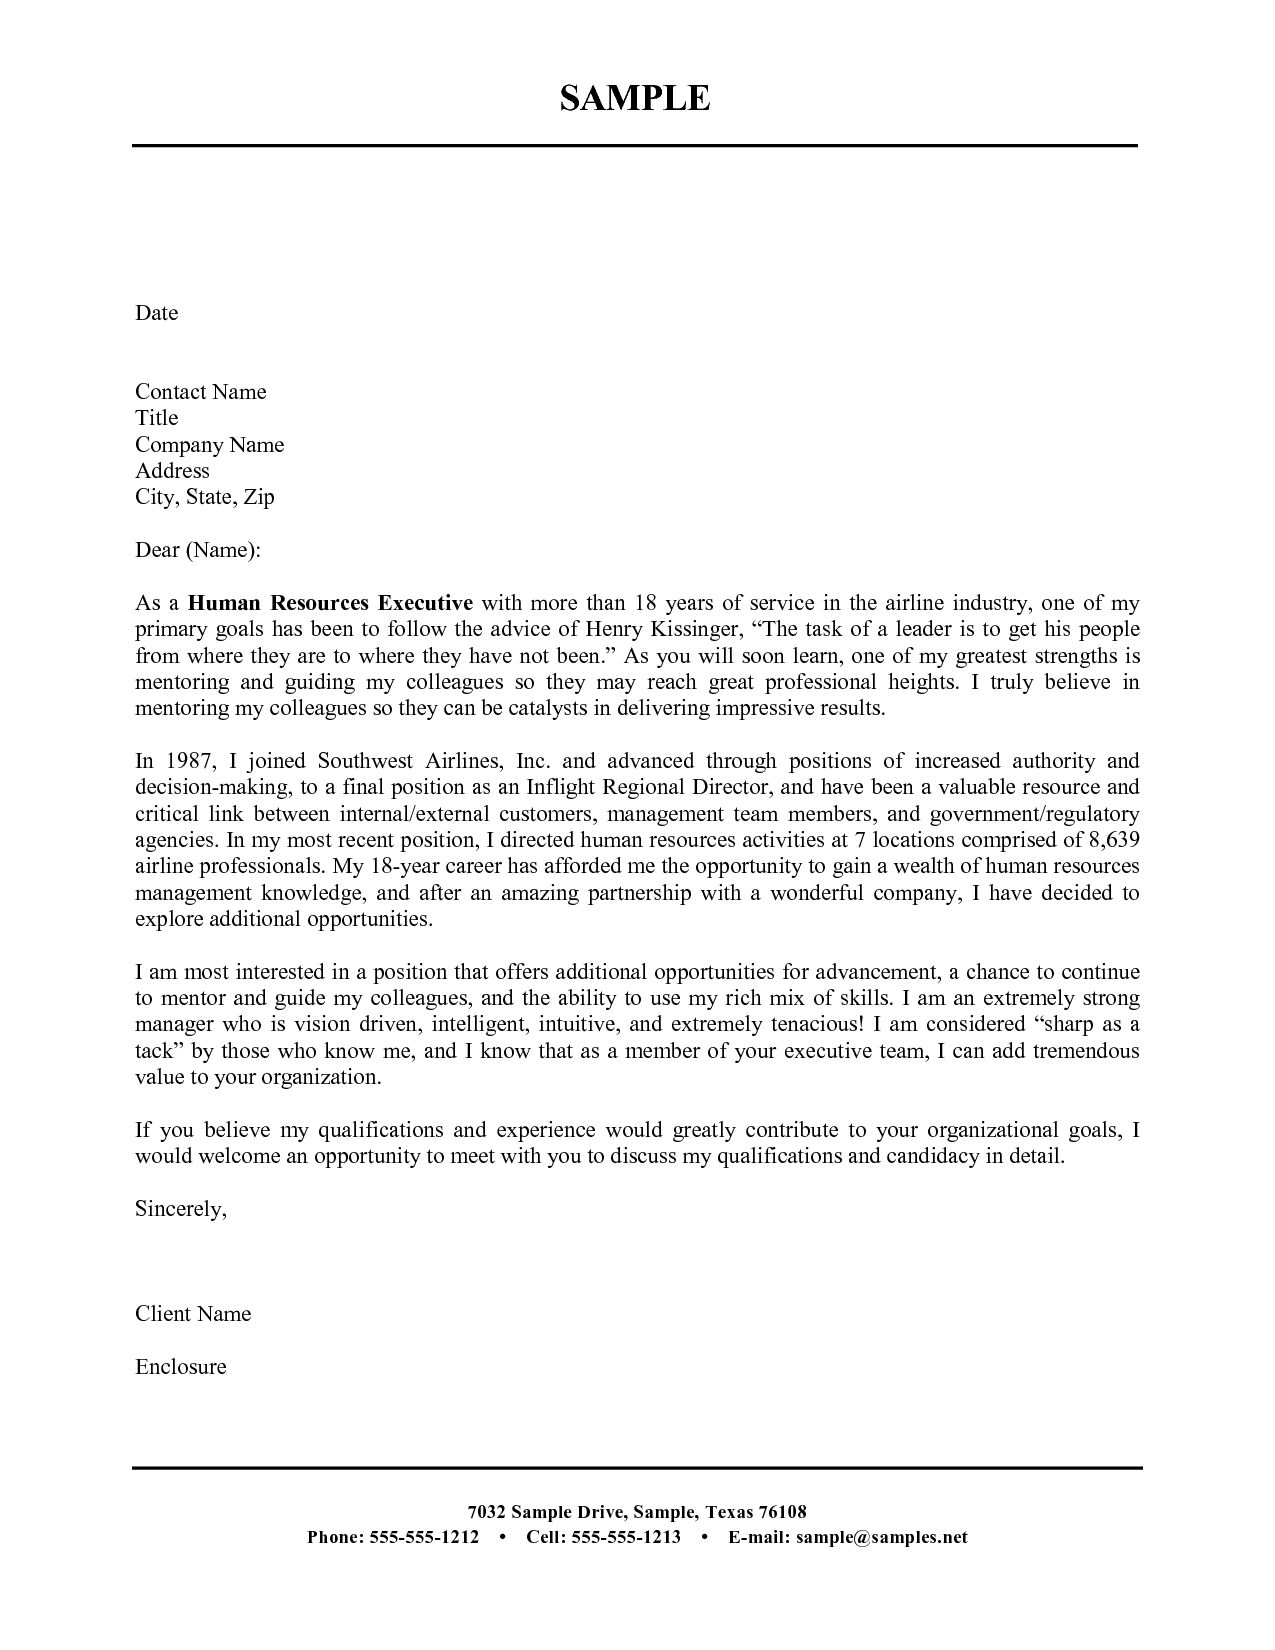 Ms Word Letter Corto Foreversammi For Microsoft Word Business Letter Template Cover Letter For Resume Resume Cover Letter Examples Cover Letter Template Free - ms word letter template